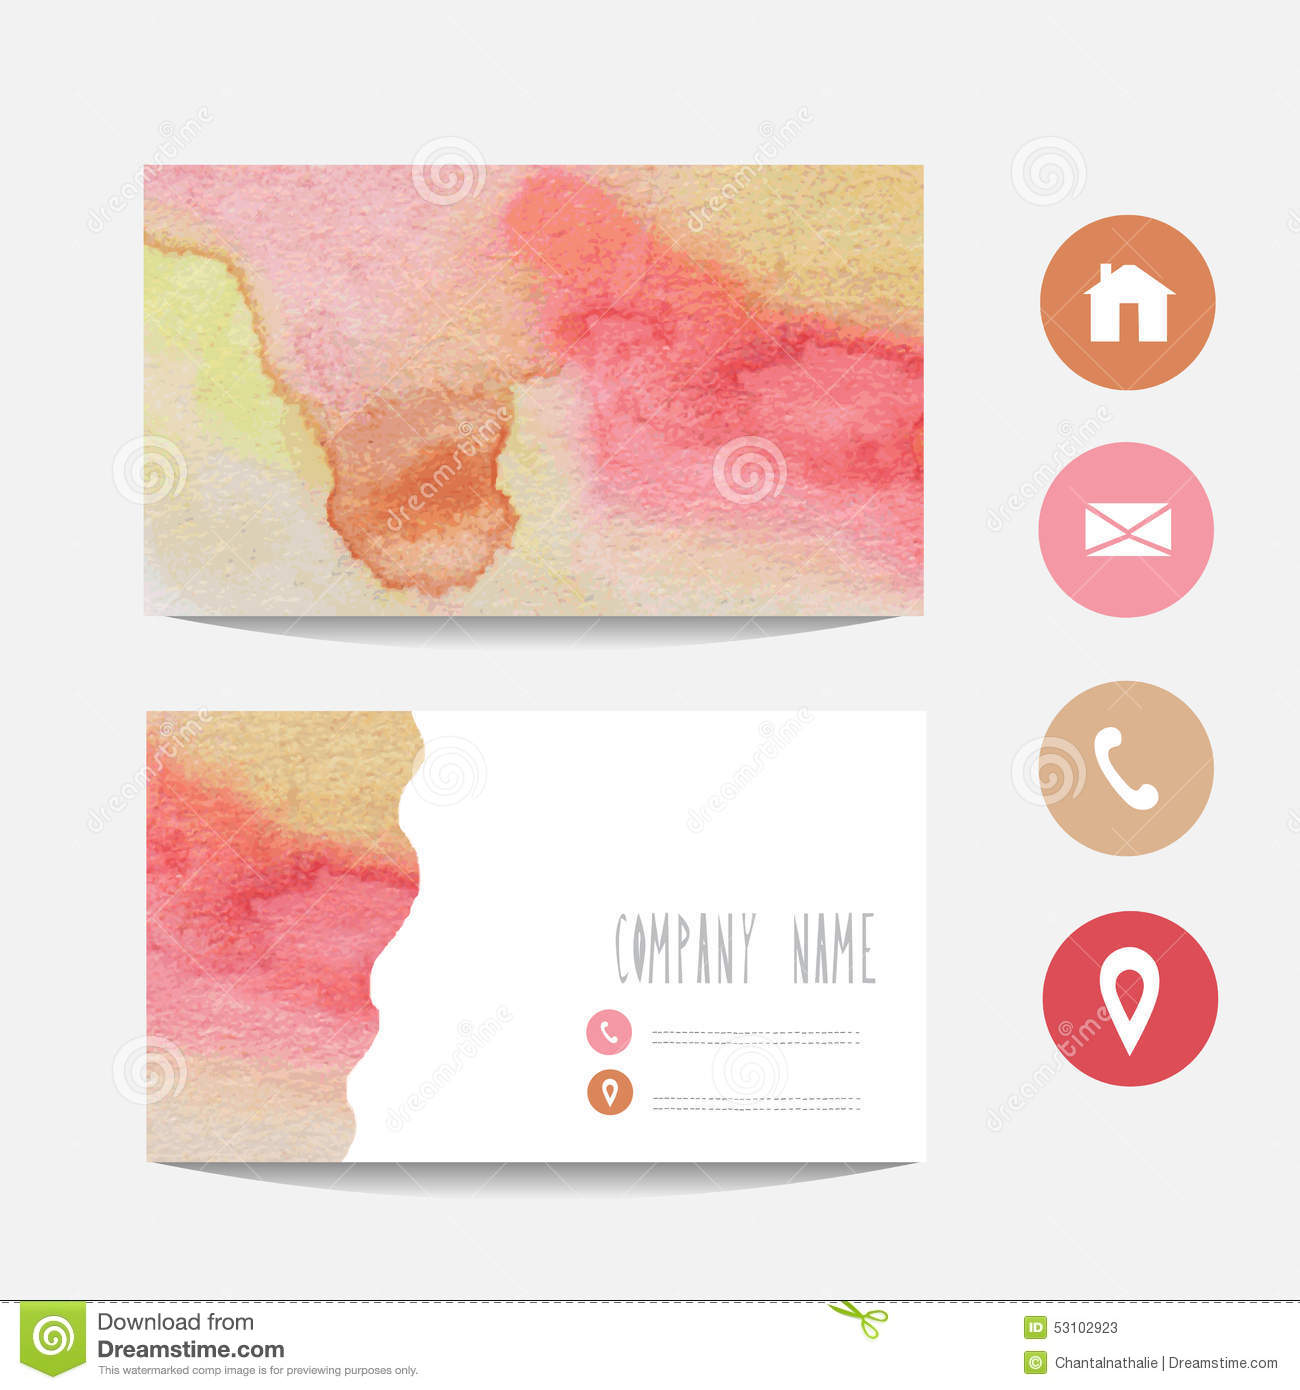 watercolor business card stock vector  image: 53102923